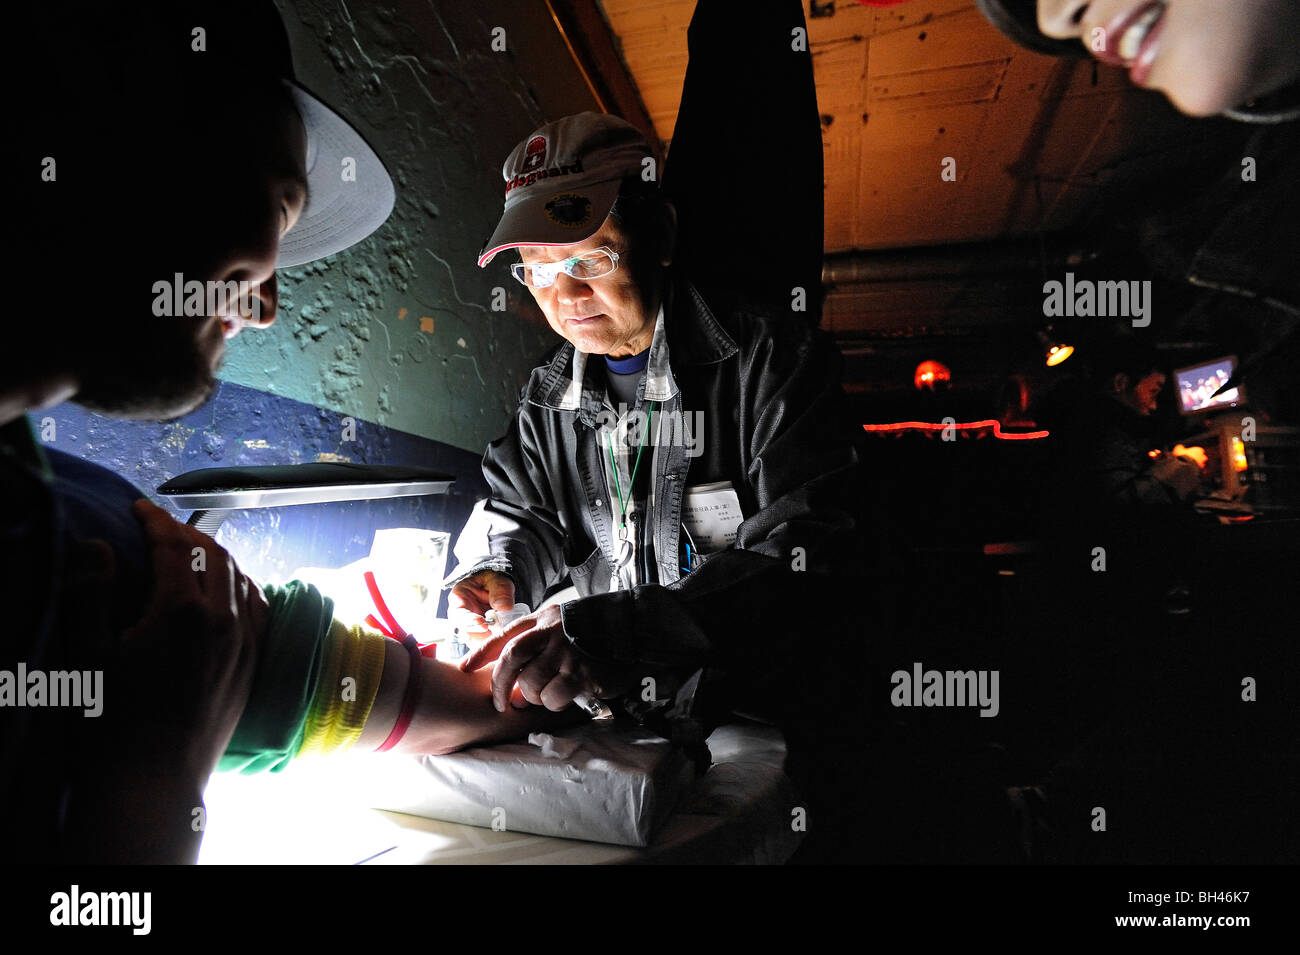 A customer undertakes a AIDS test offered free-of-charge by a doctor of an HIV awareness group at a bar in Tokyo, - Stock Image